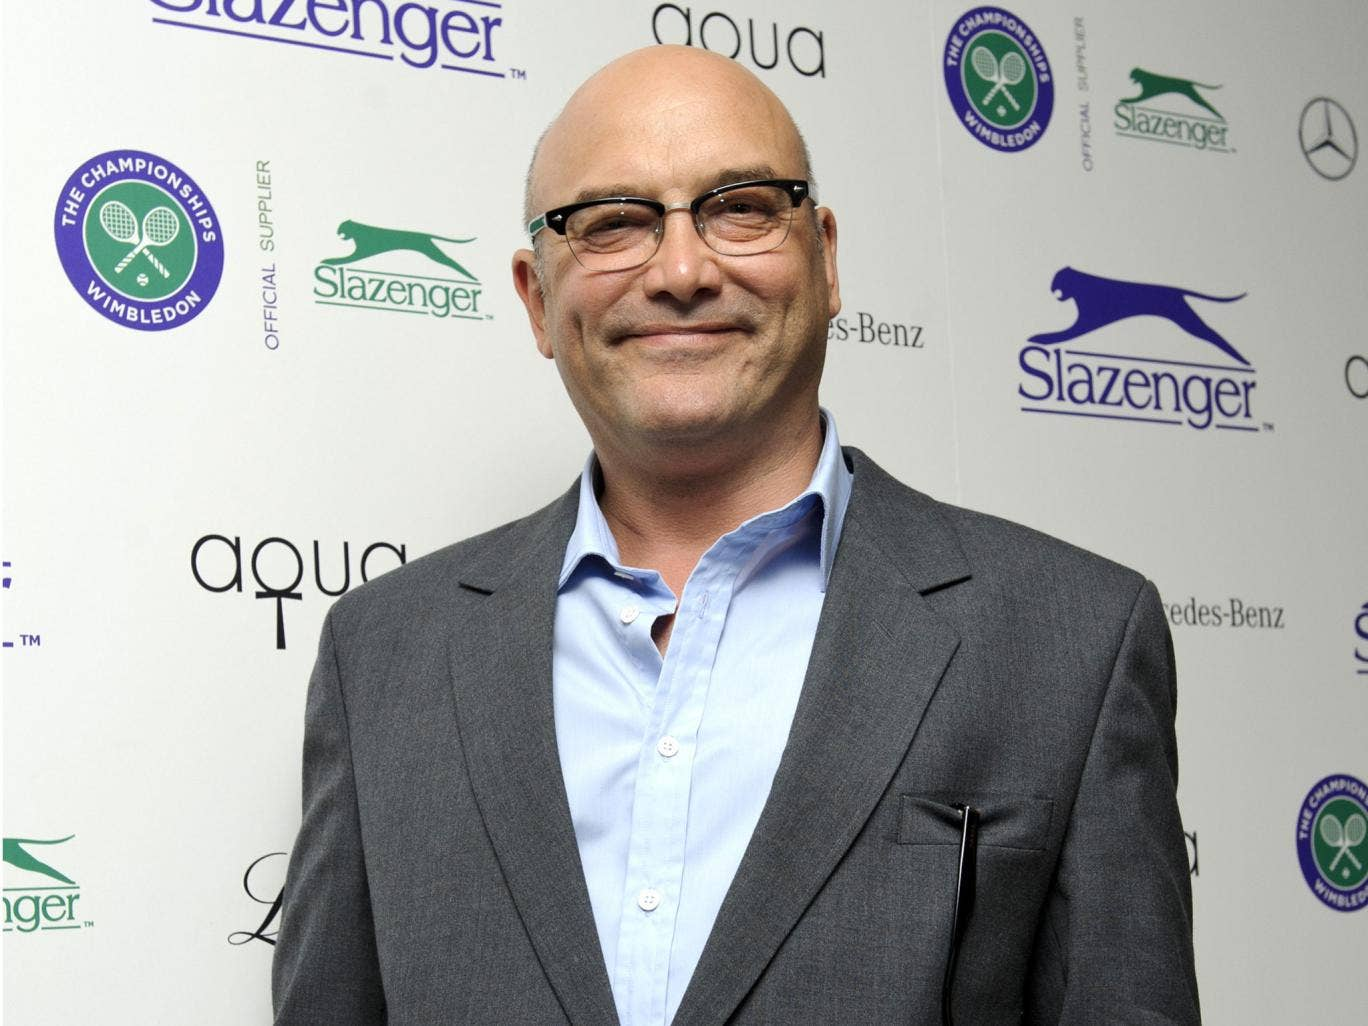 Masterchef's Gregg Wallace has admitted he would like to try horse meat